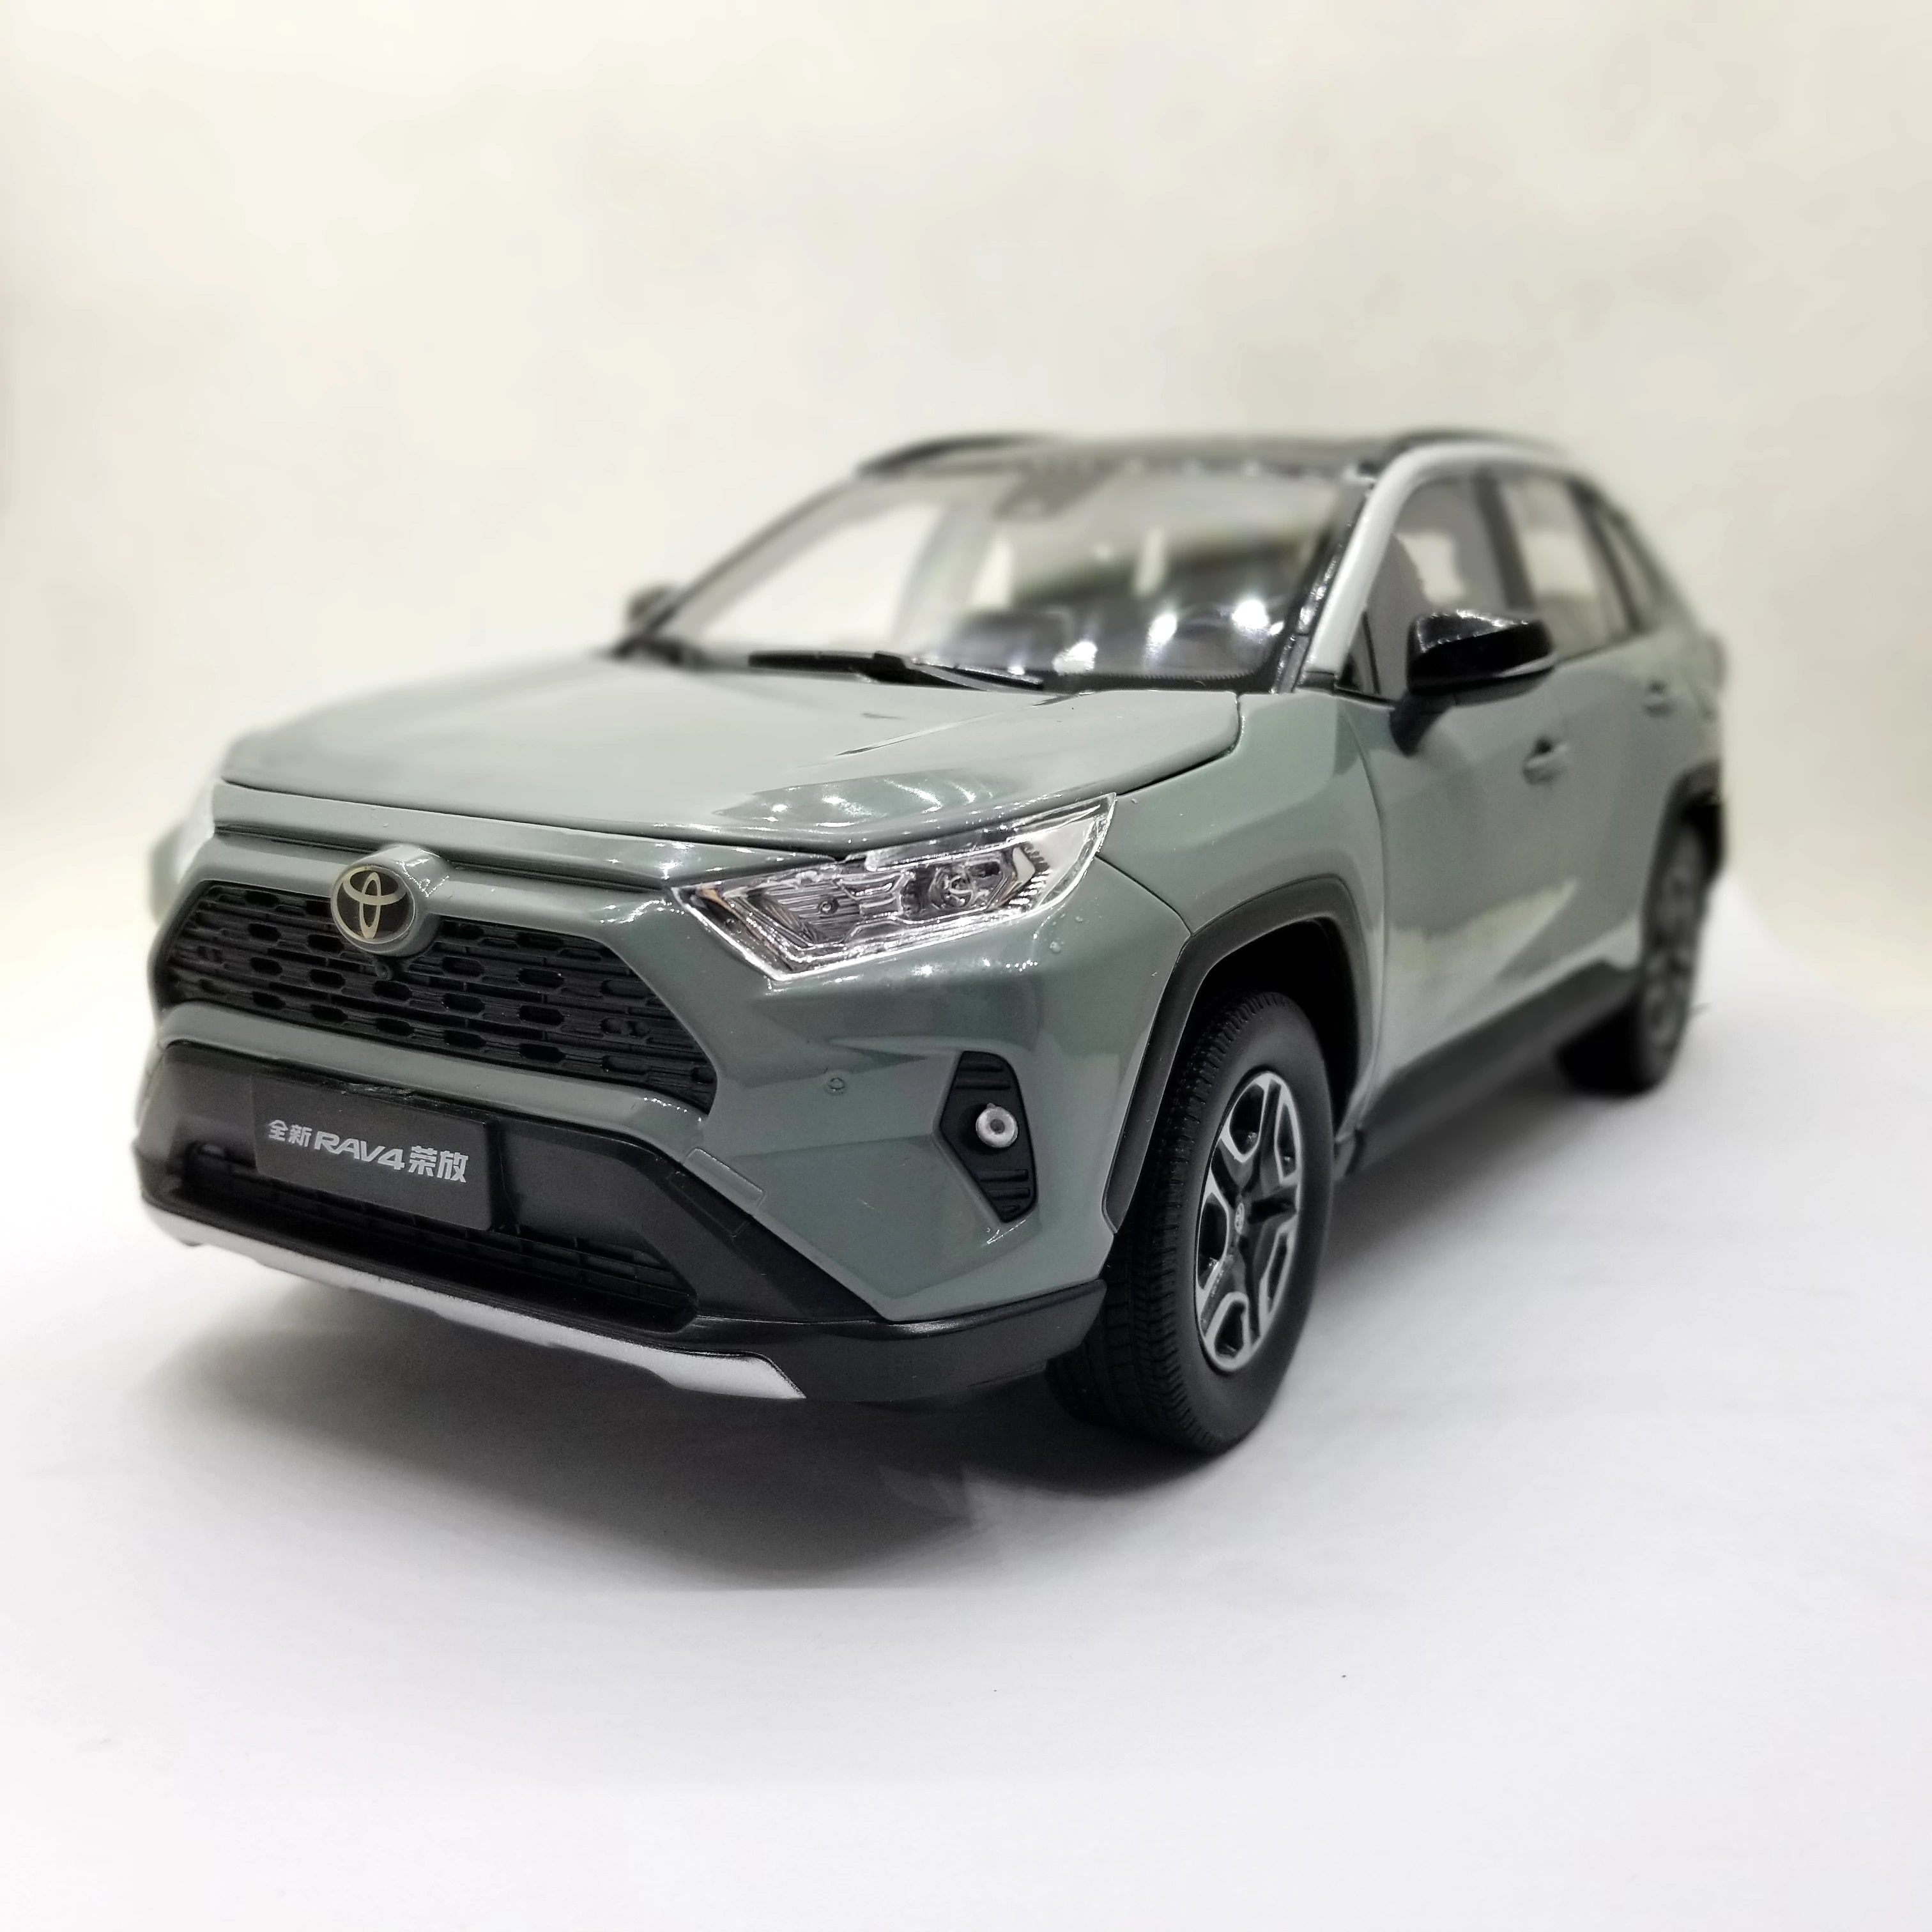 1:18 Diecast Model for Toyota RAV4 2020 Gray SUV Alloy Toy Car Miniature Collection Gifts RAV 4